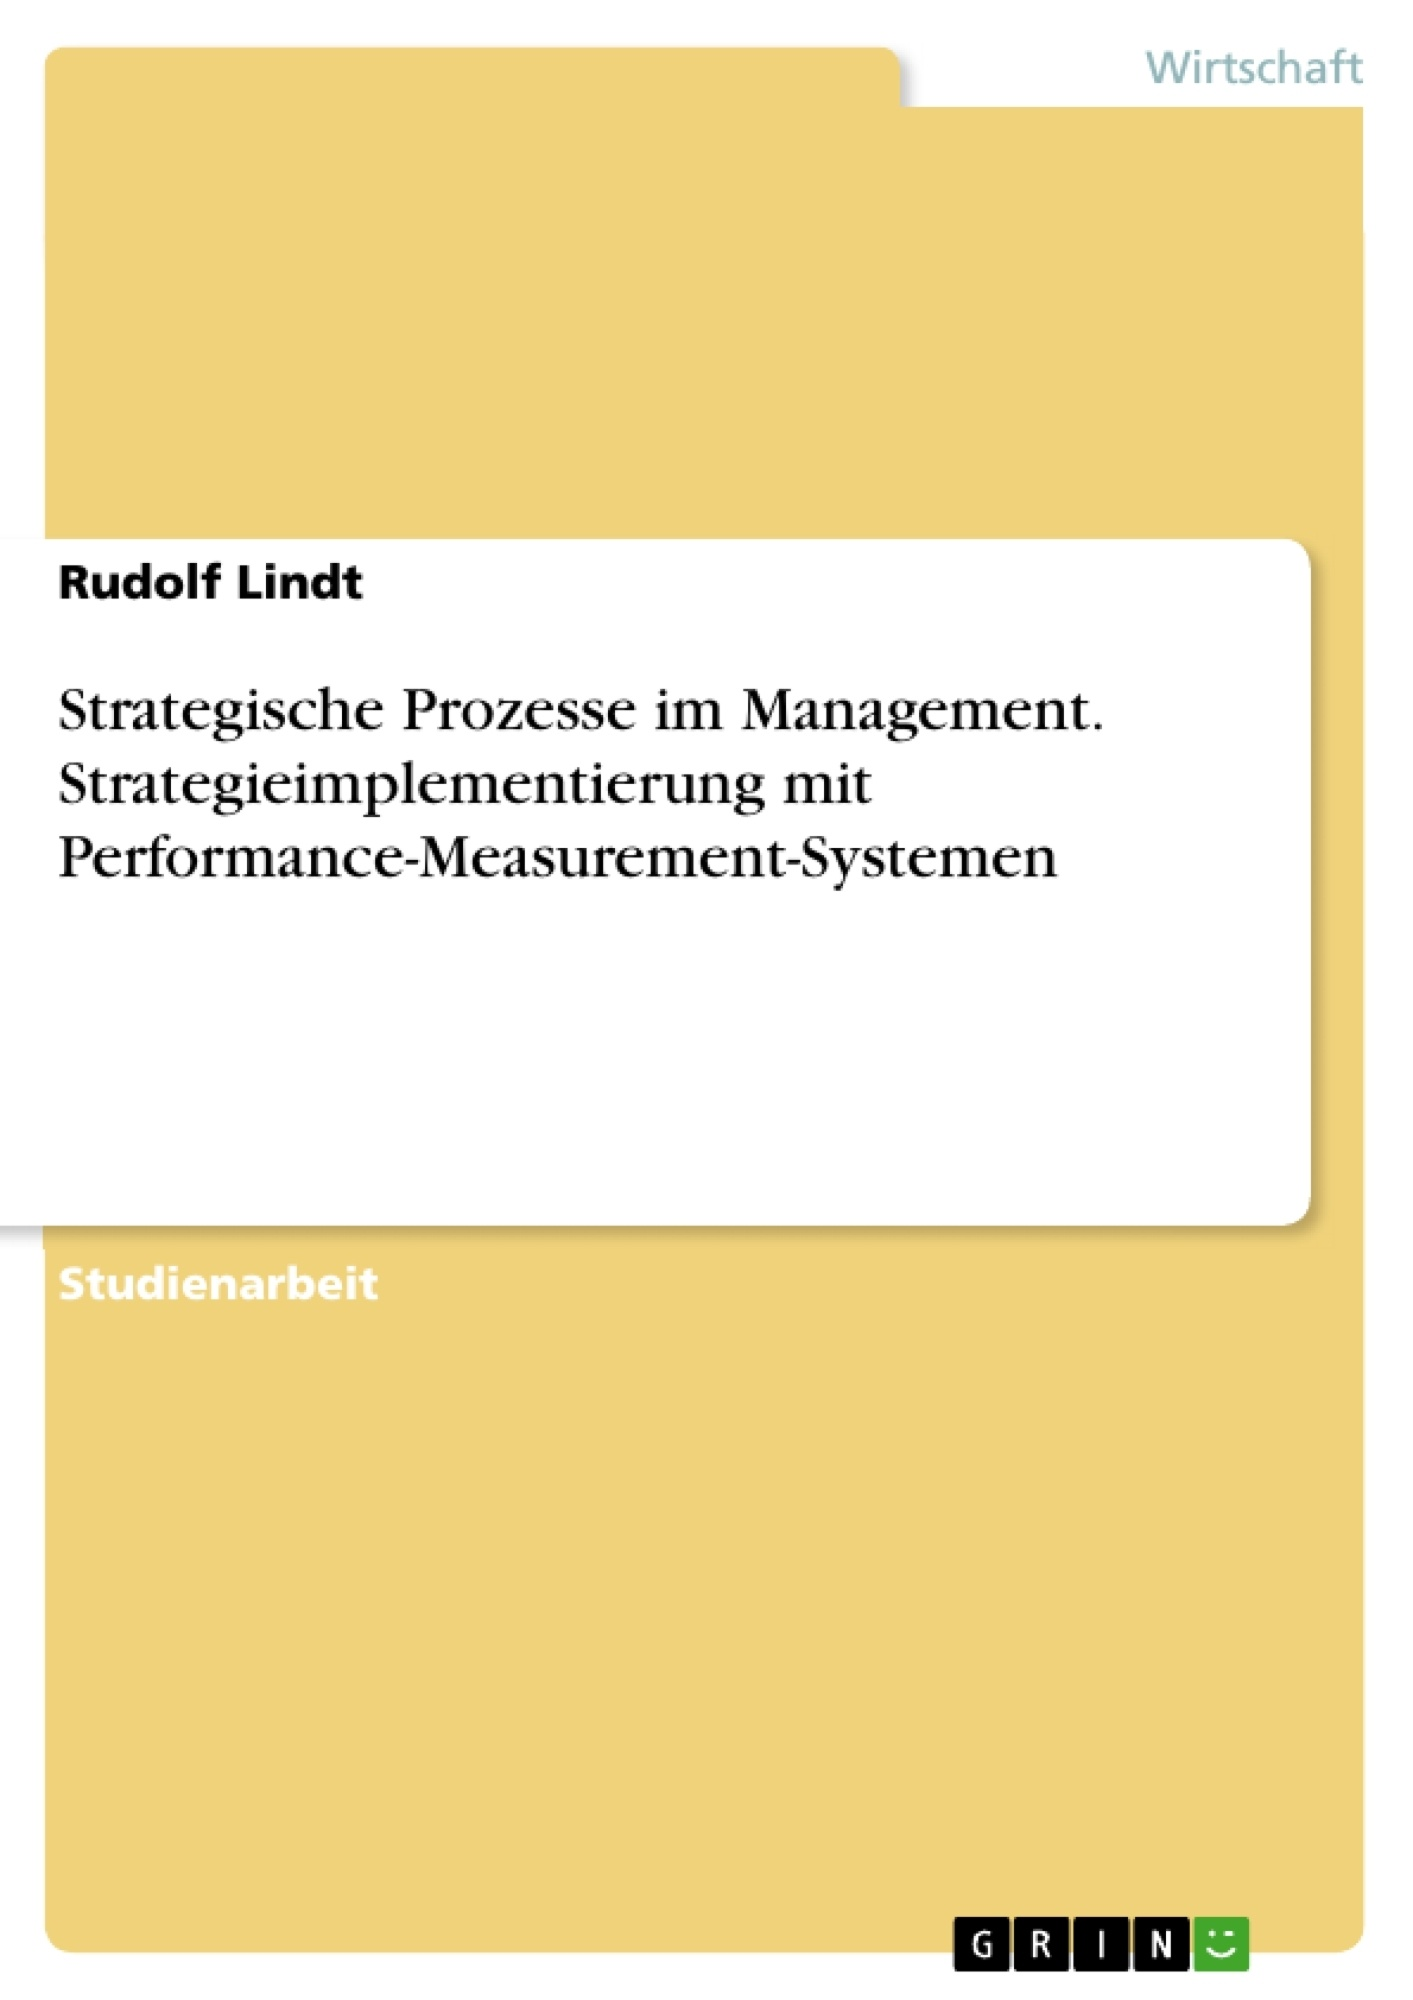 Titel: Strategische Prozesse im Management. Strategieimplementierung mit Performance-Measurement-Systemen